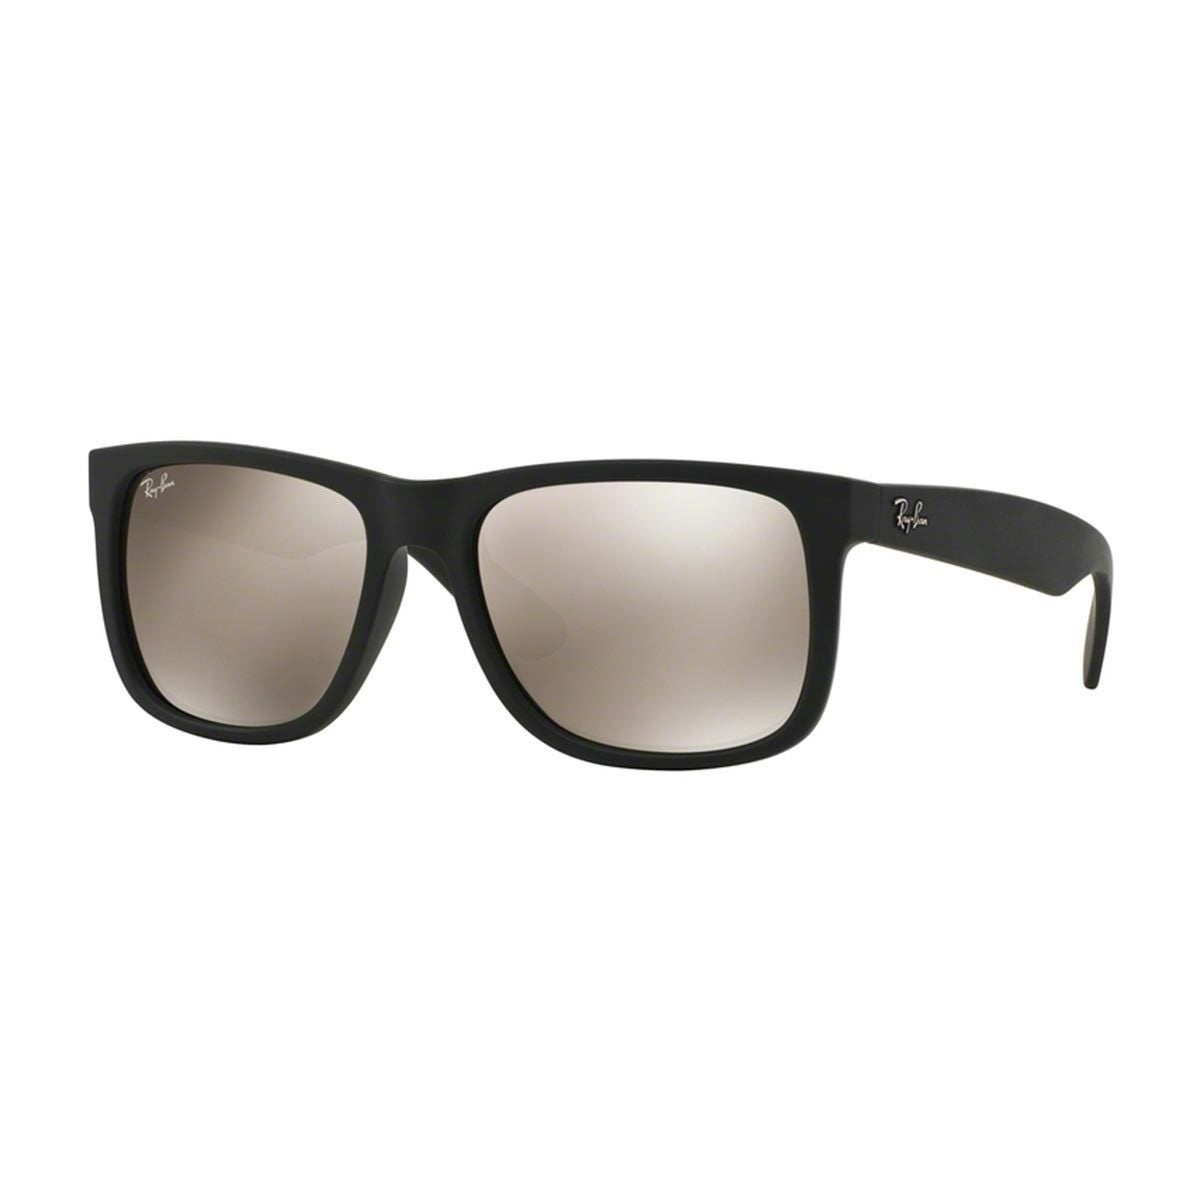 a1314bd327796 Ray-Ban Justin Color Mix RB 4165 Unisex Black Frame Gold Mirror Lens  Sunglasses